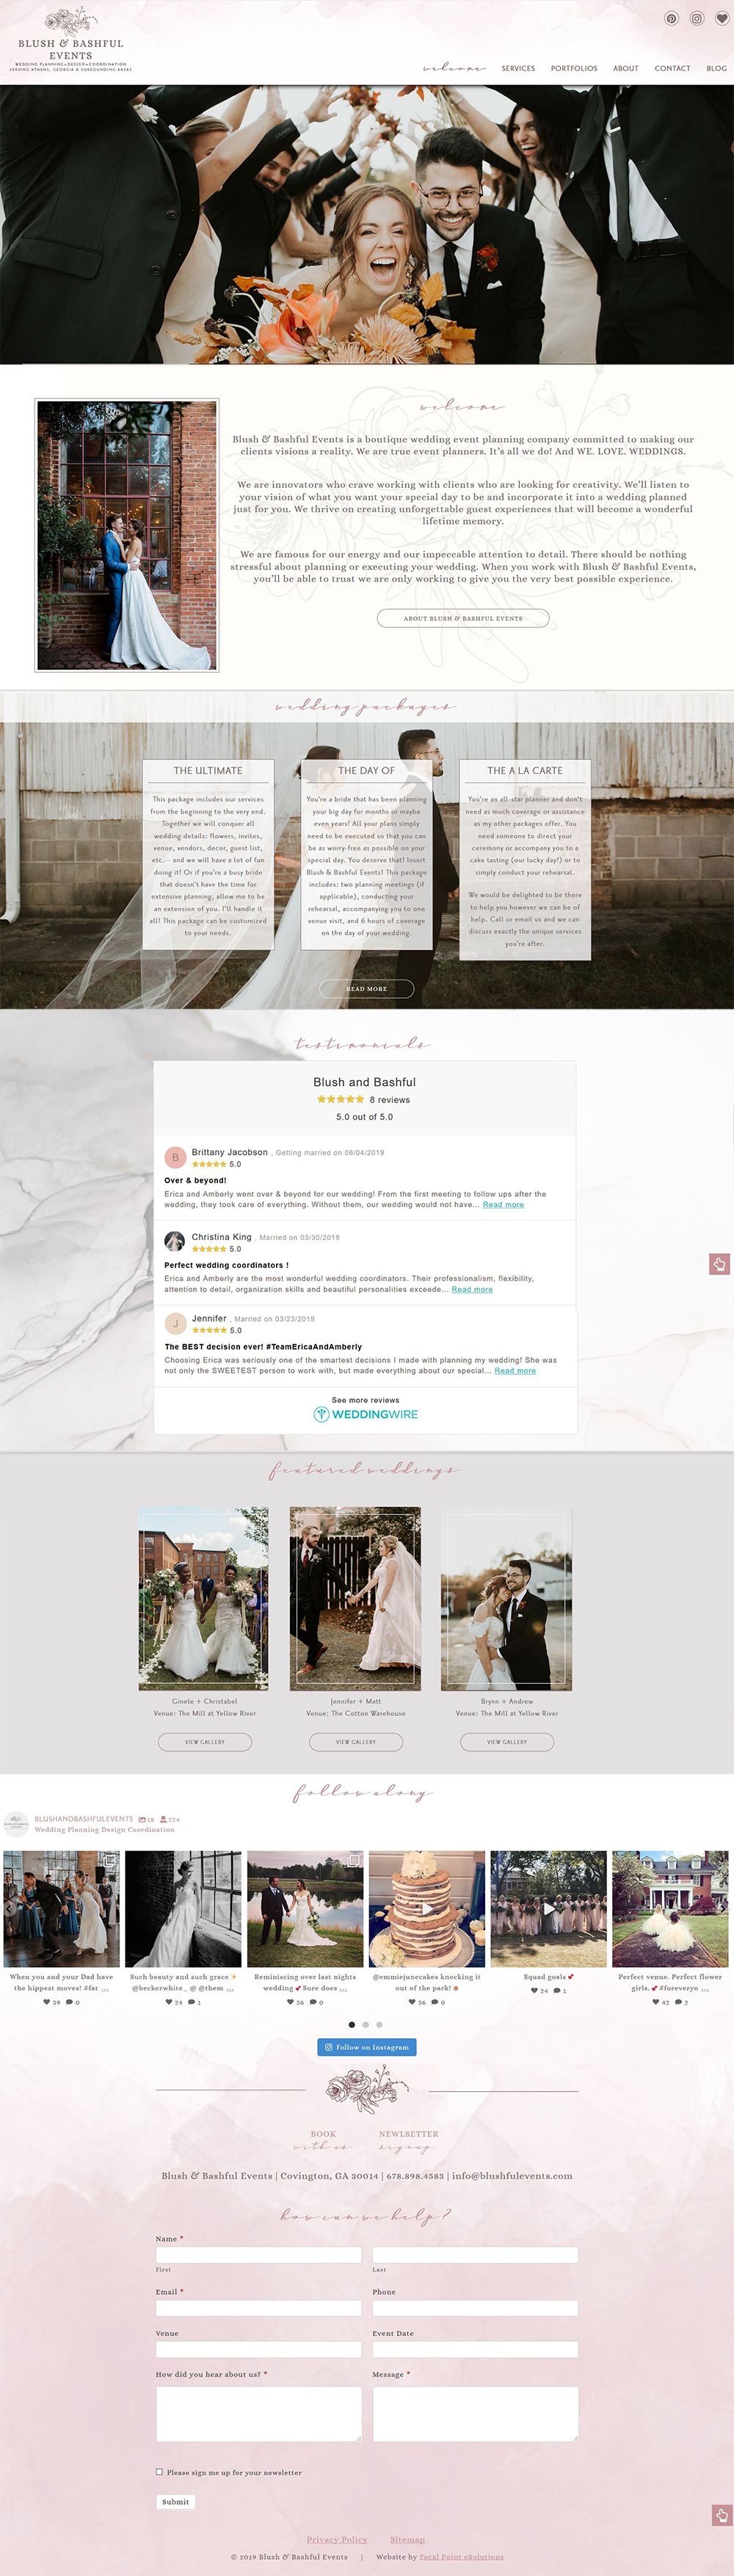 Website Design for Blush & Bashful Events - Wedding Planners – Athens GA